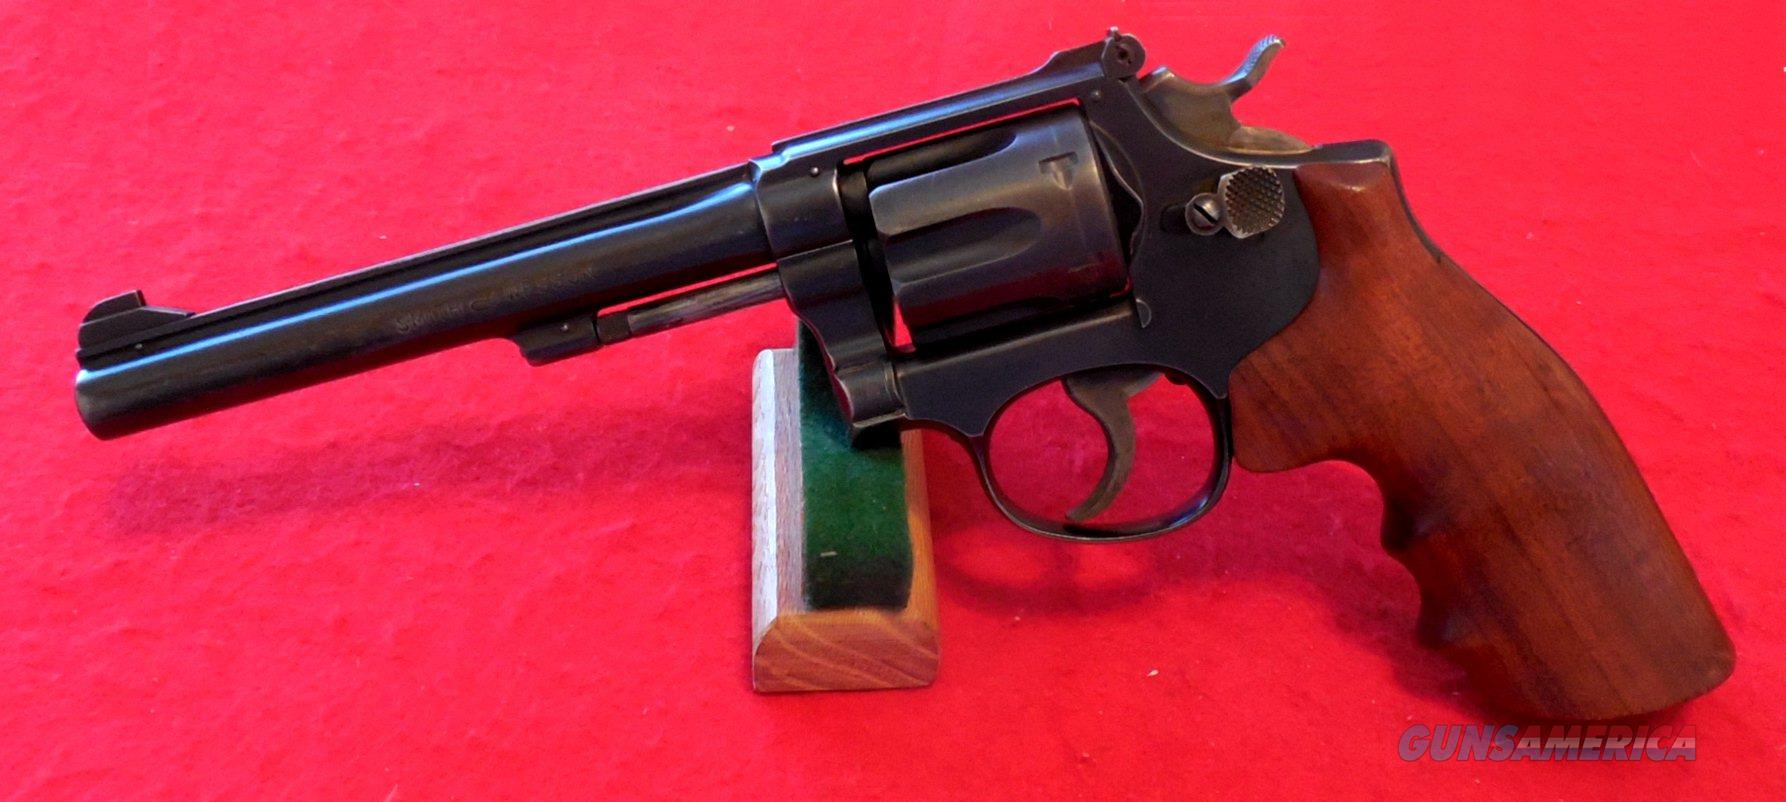 Smith & Wesson Model 17 K-22 Masterpiece Revolver